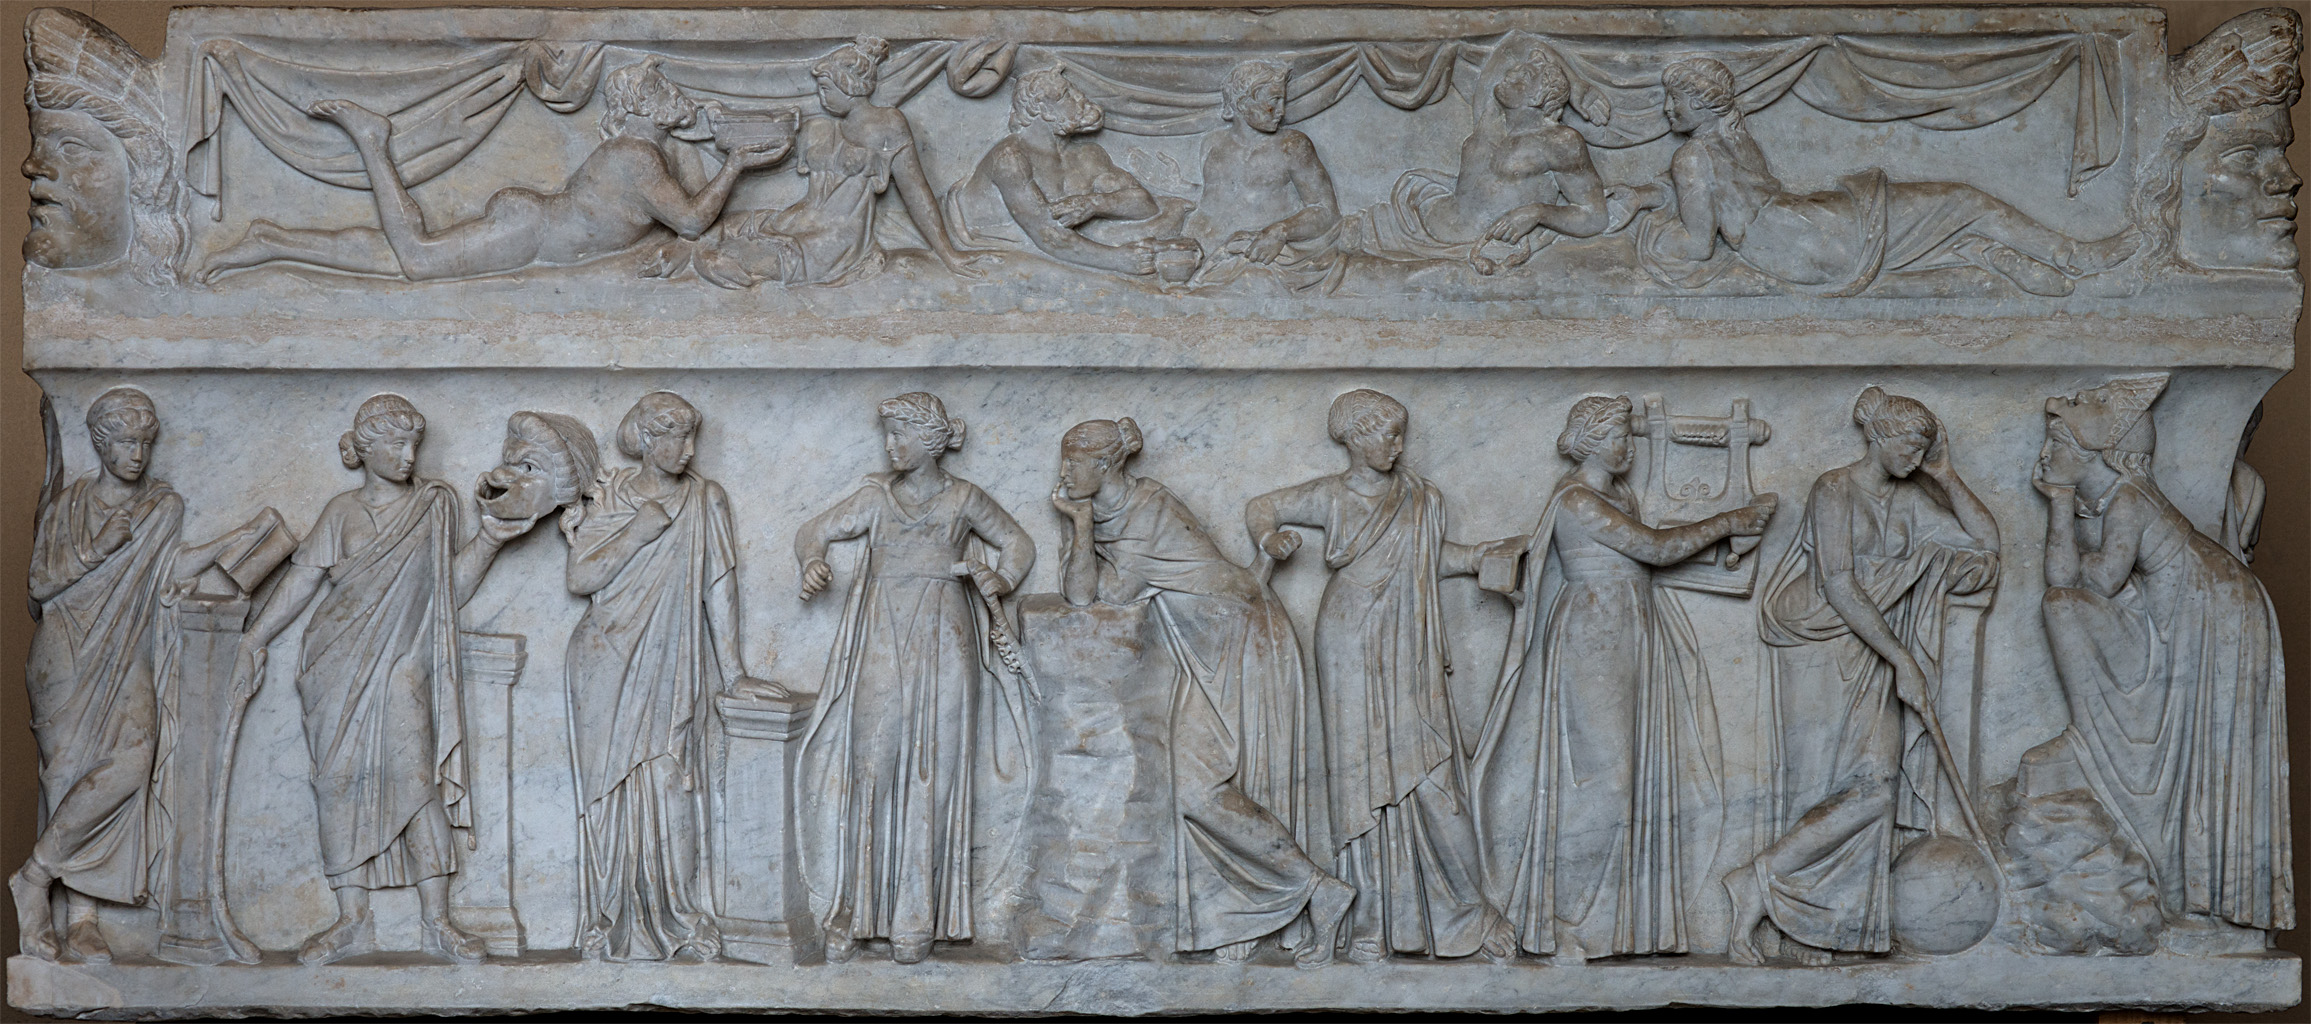 Sarcophagus of the Muses. Marble. Rome. First half of the 2nd cent. CE.  Inv. No. MR 880 (Ma 475). Paris, Louvre Museum